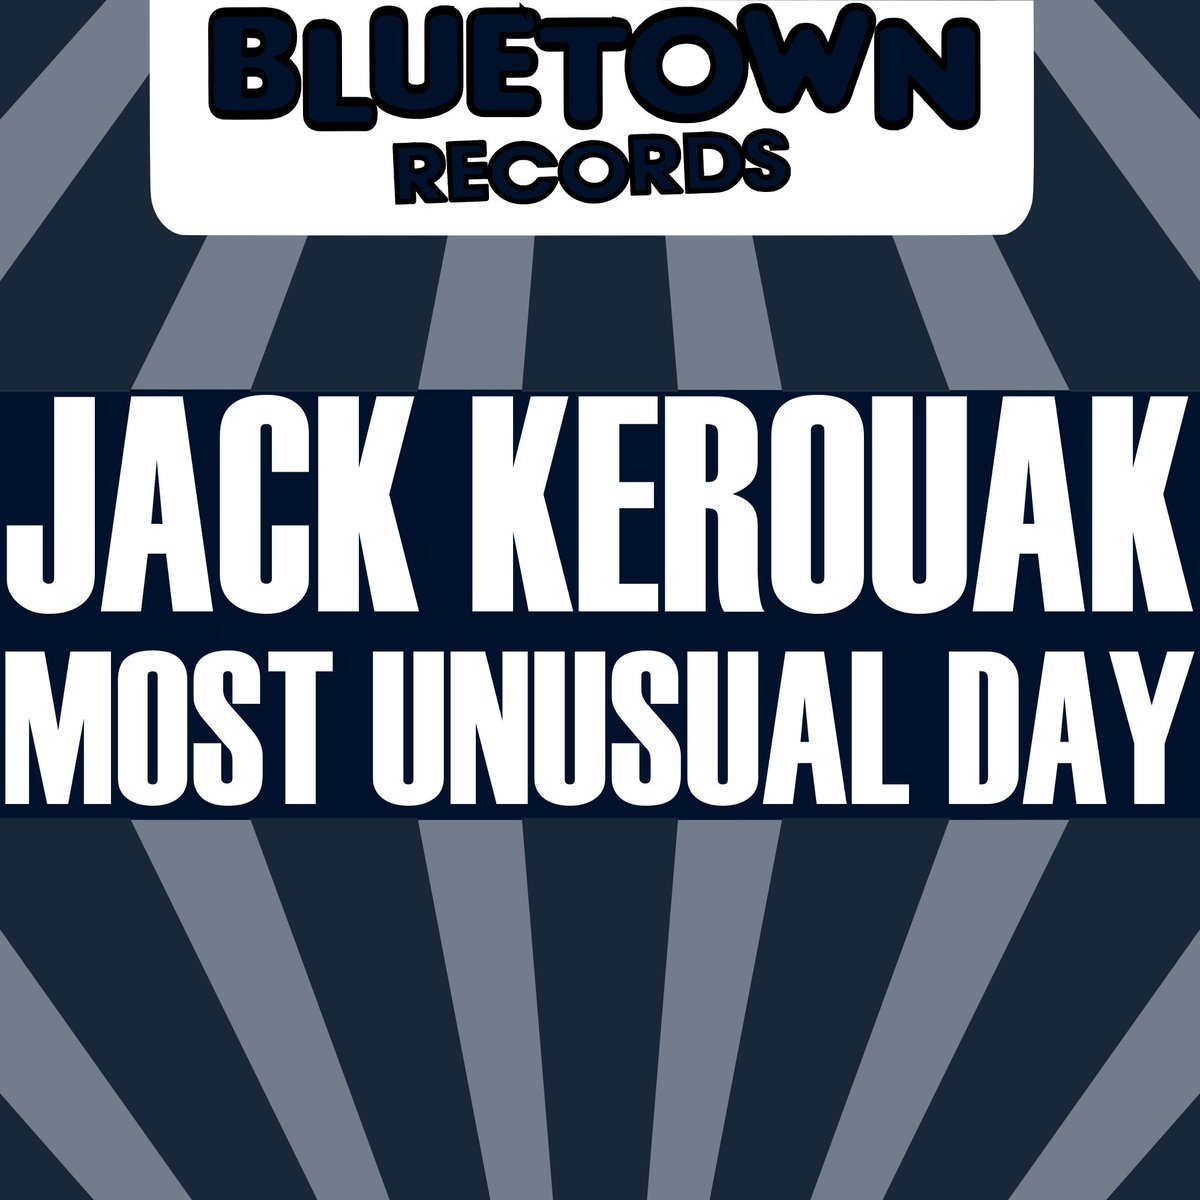 Out now! Jack Kerouak &quot;Most Unusual Day&quot;  http://www. traxsource.com/track/3024141/ most-unusual-day &nbsp; …  #housemusic #realhousemusic <br>http://pic.twitter.com/yOz20H6JEp